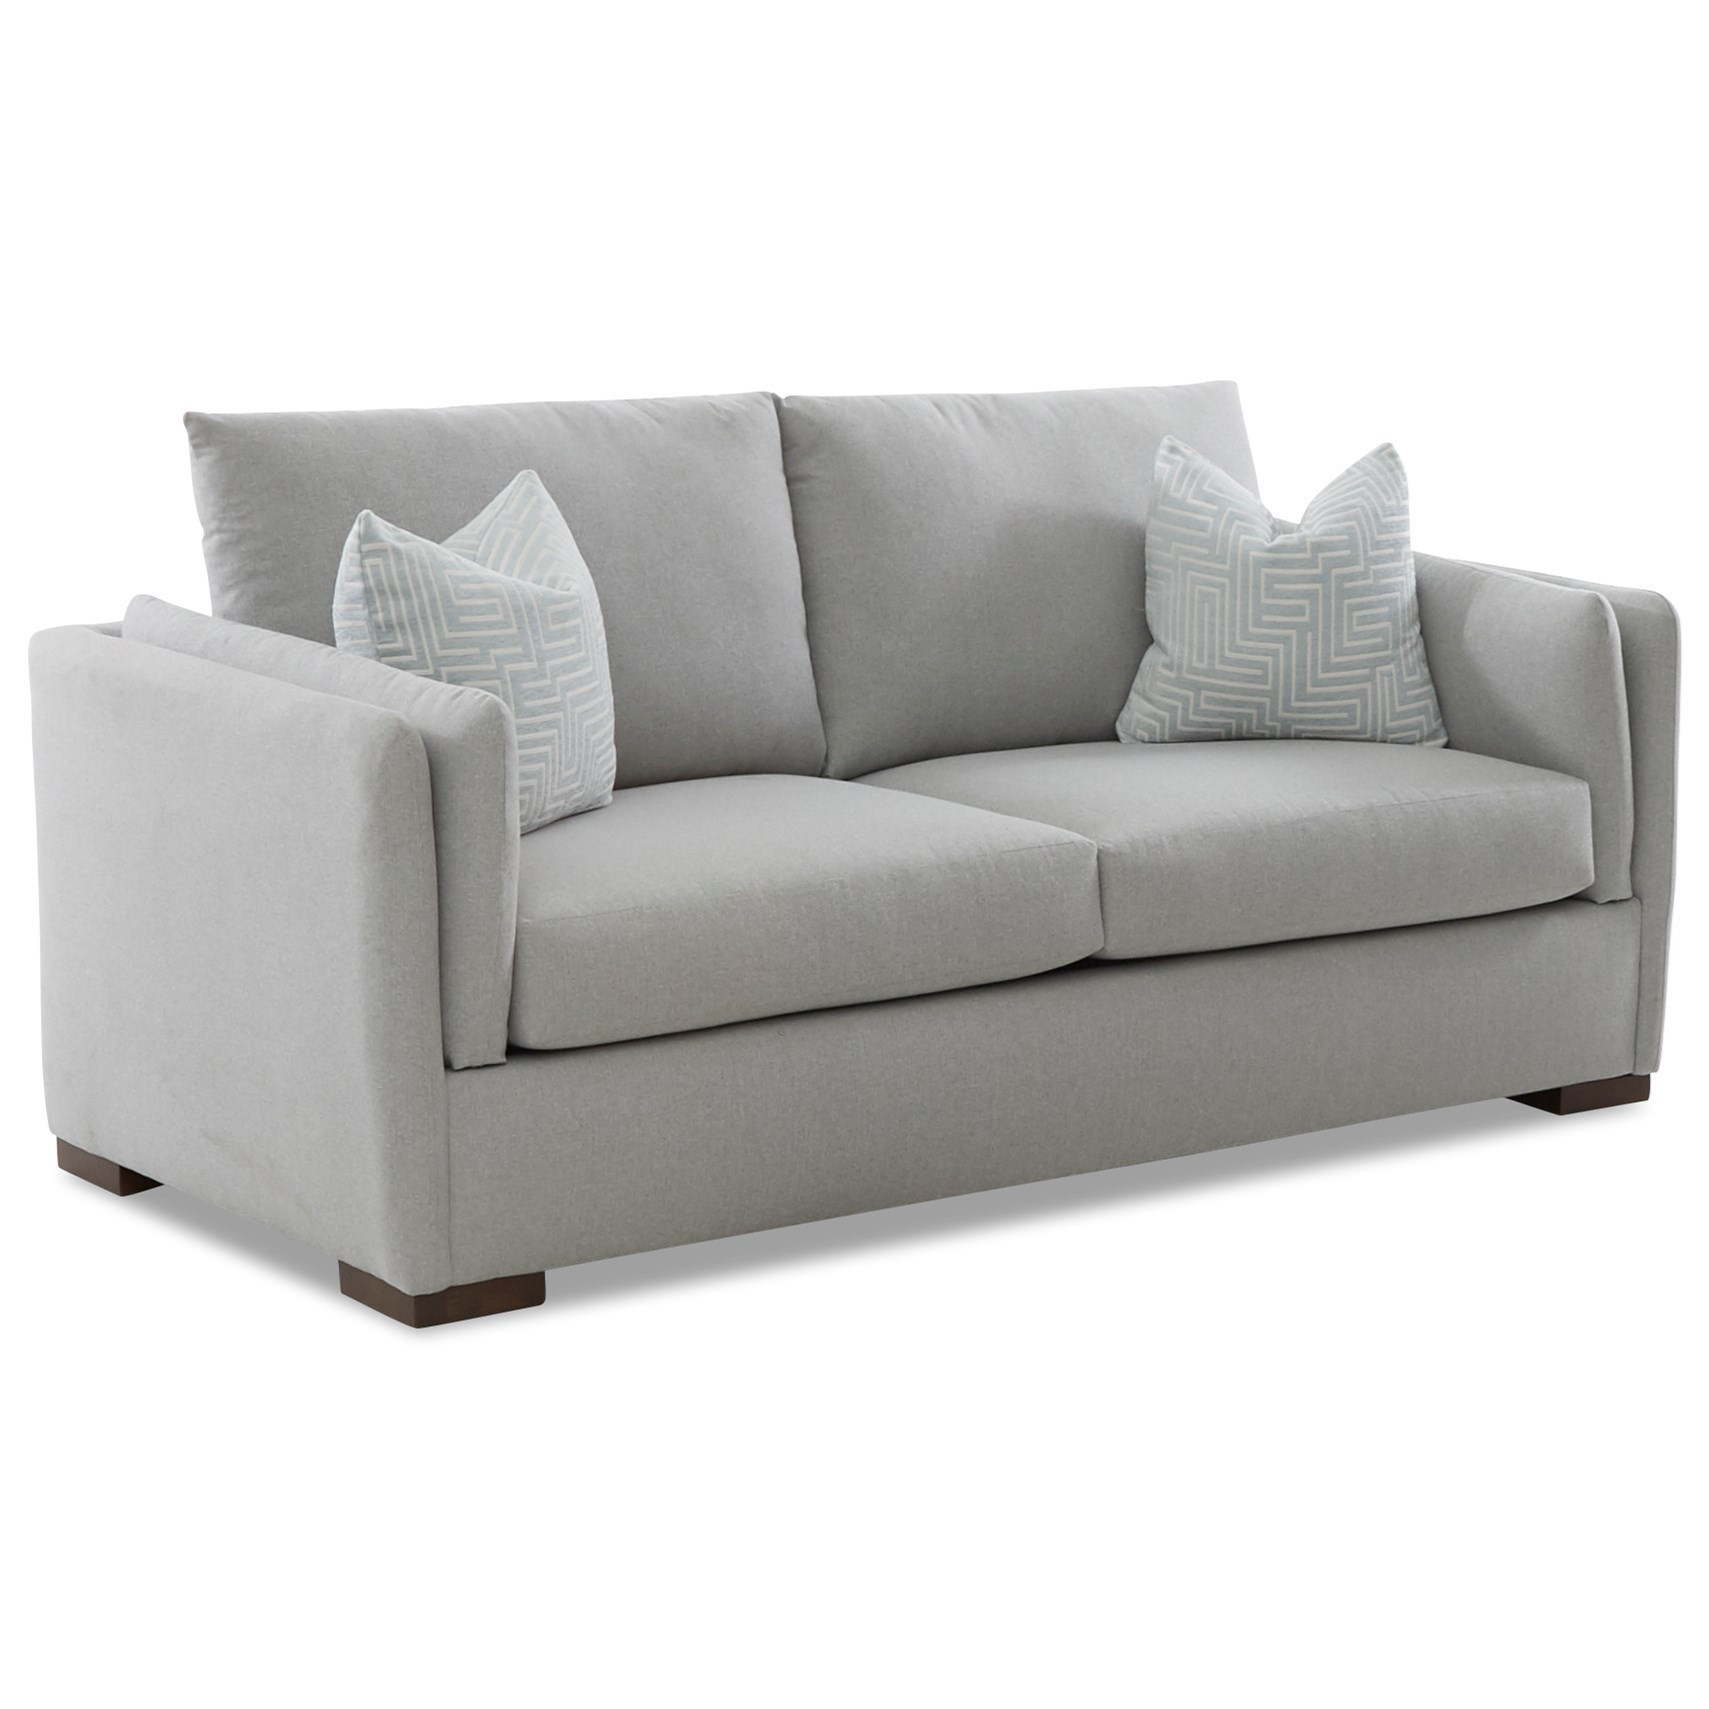 Ellyson Queen Inner Spring Sleeper by Klaussner at Northeast Factory Direct